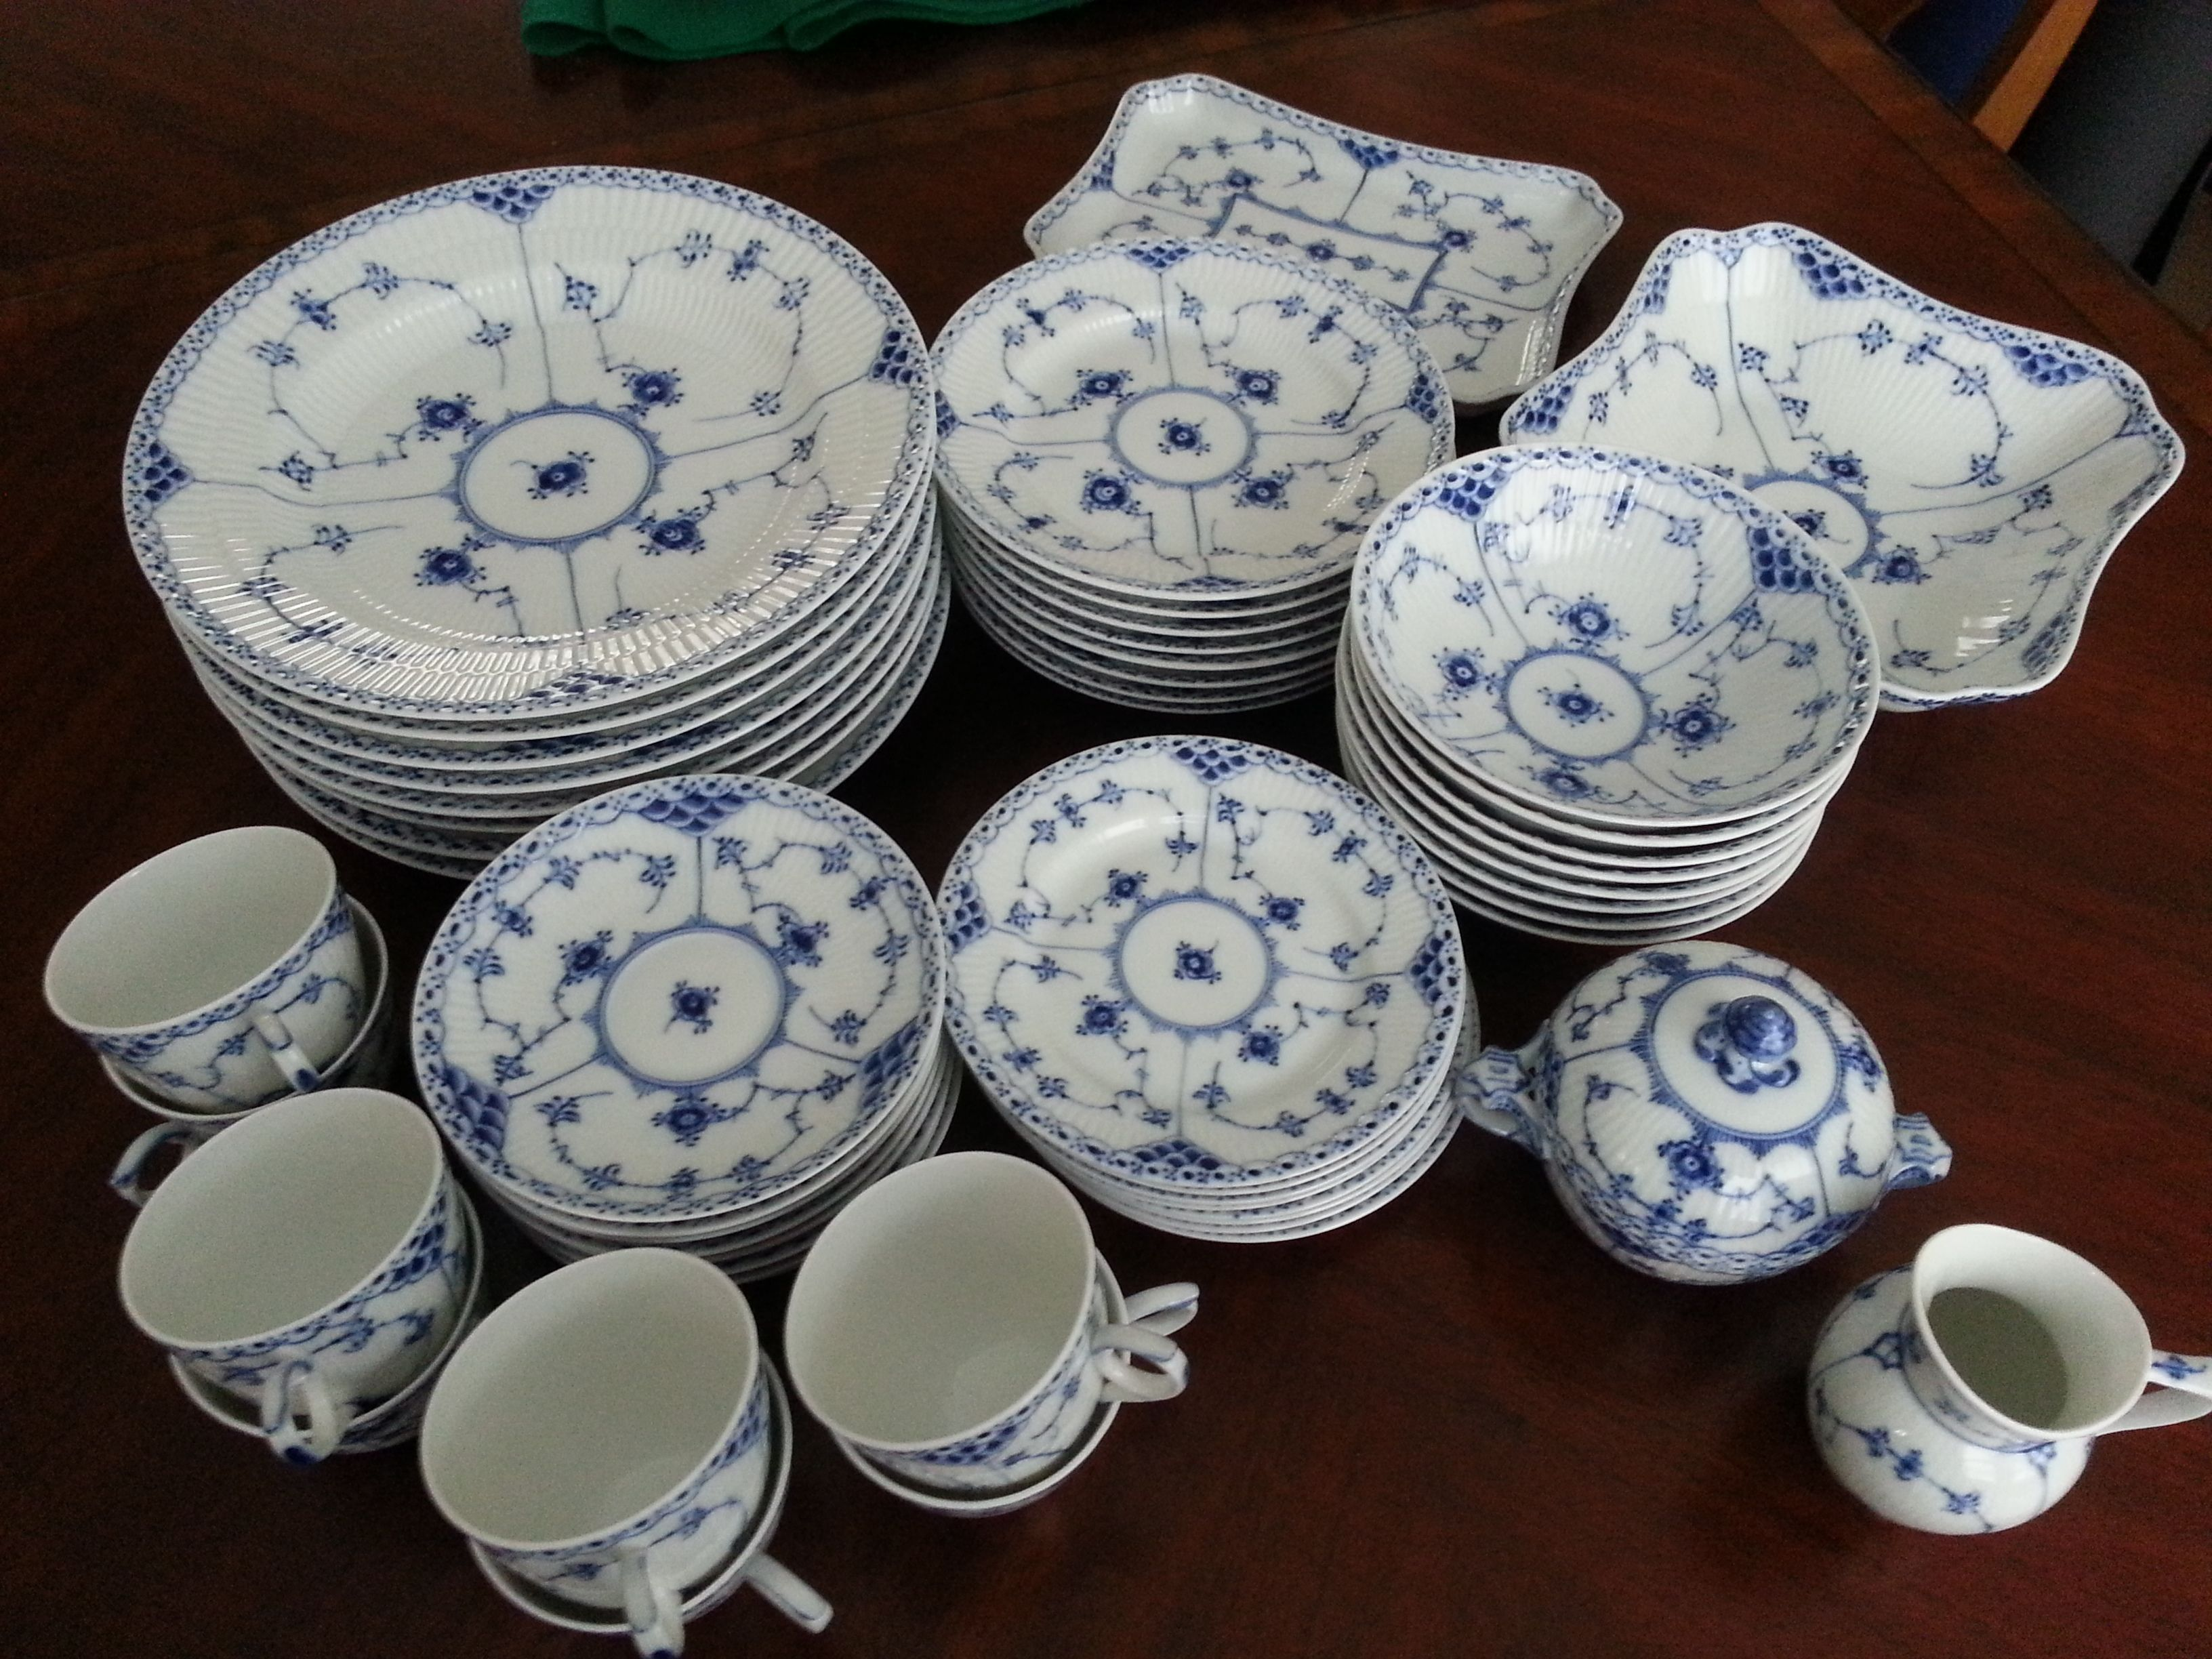 Royal Copenhagen Dinnerware Dishes Lace China Ebay Flutes Royals Dinner Ware & Pin by Judith Hollier on Royal Copenhagen Blue Fluted Half Lace ...